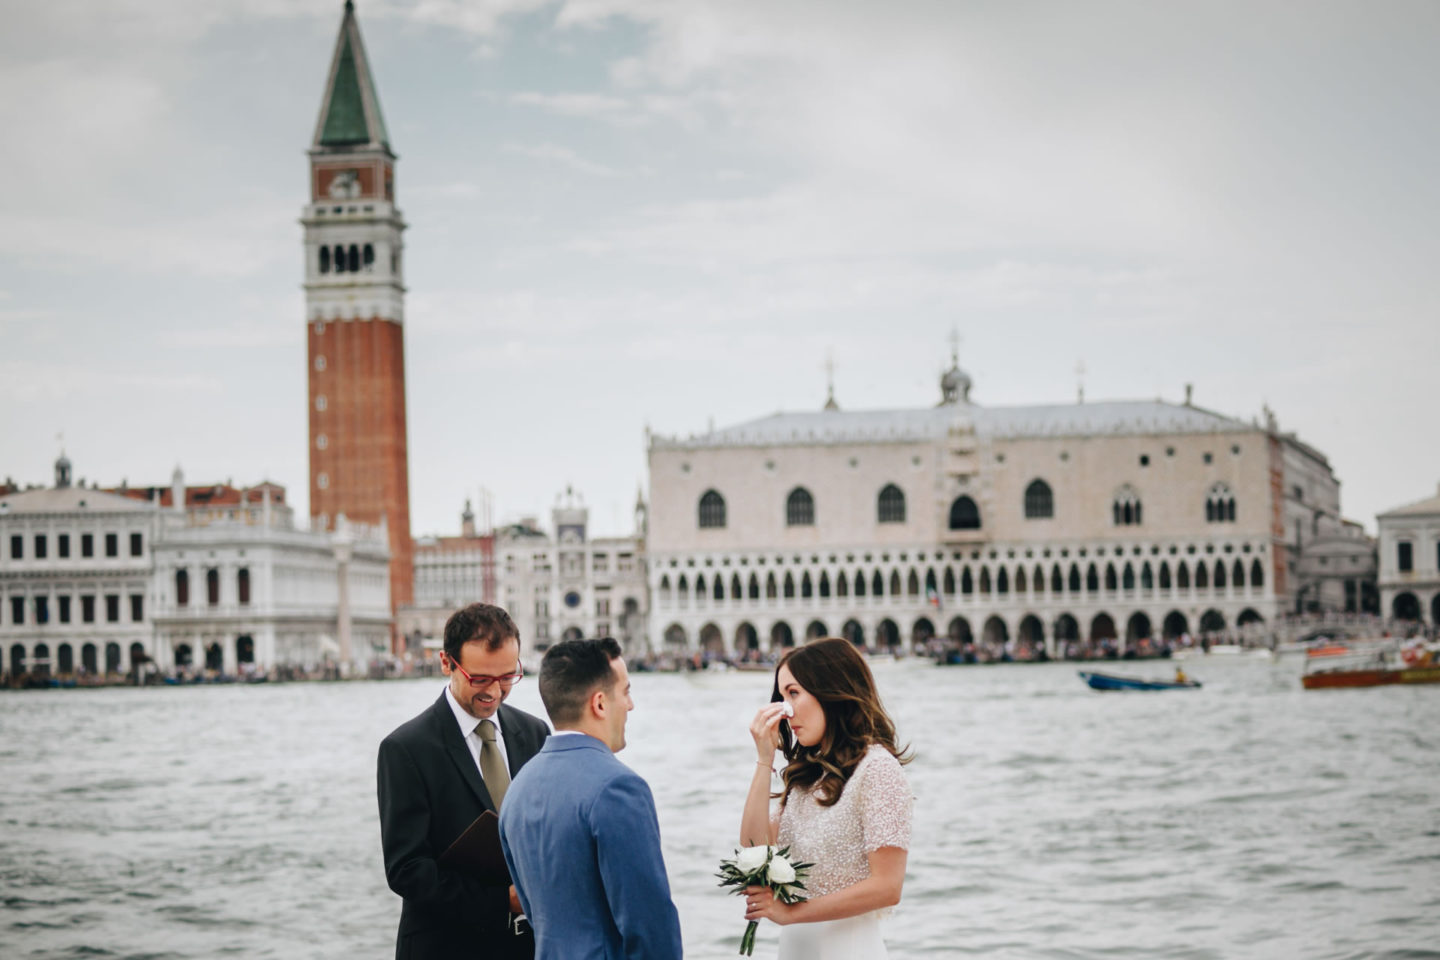 Romantic elopement in Venice :: Luxury wedding photography - 13